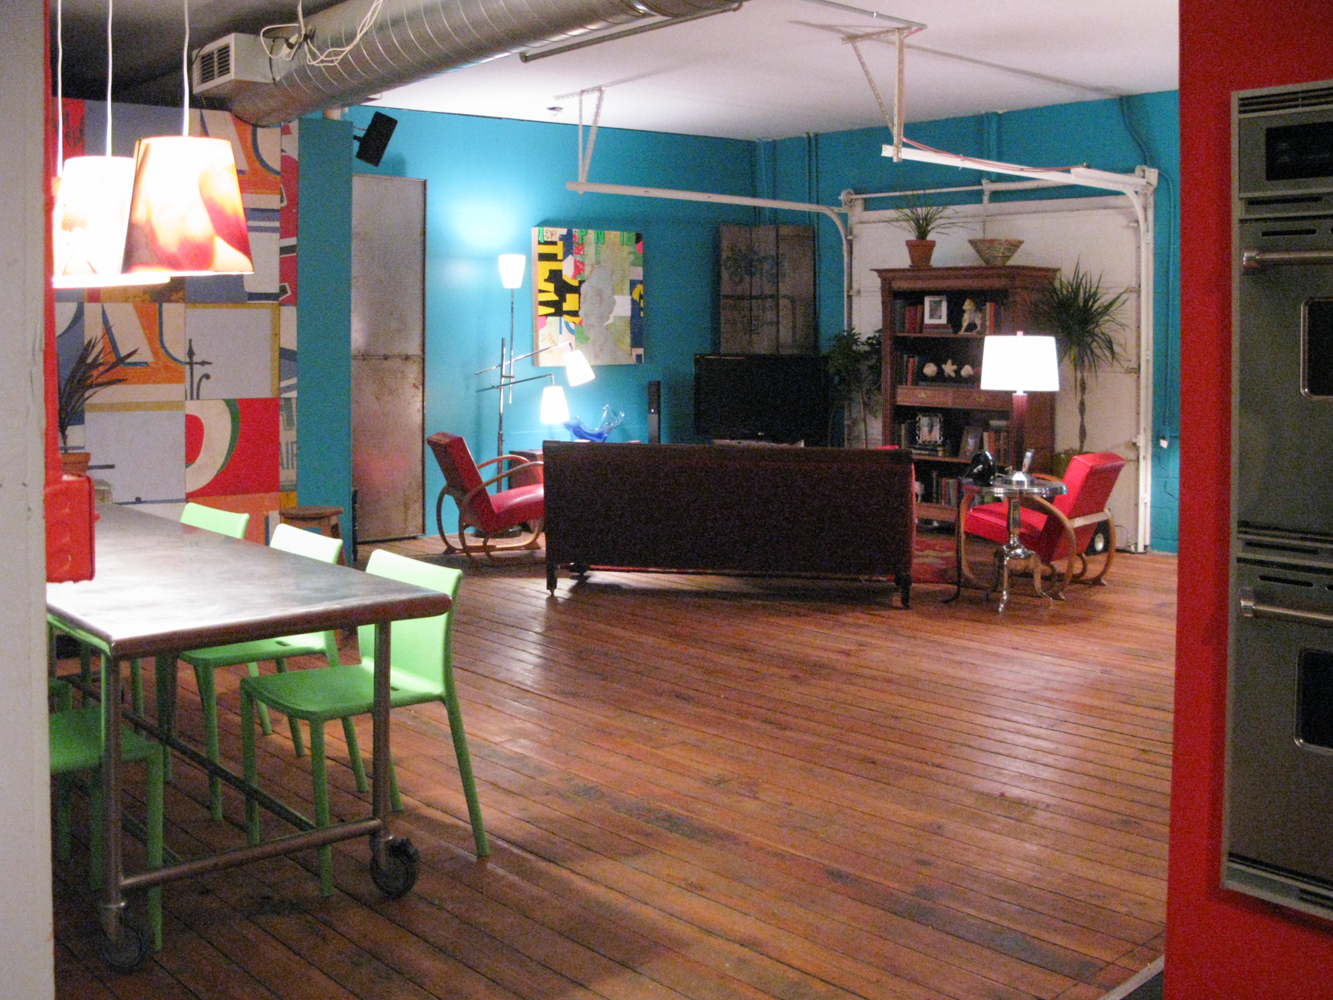 A reverse of the loft apartment.